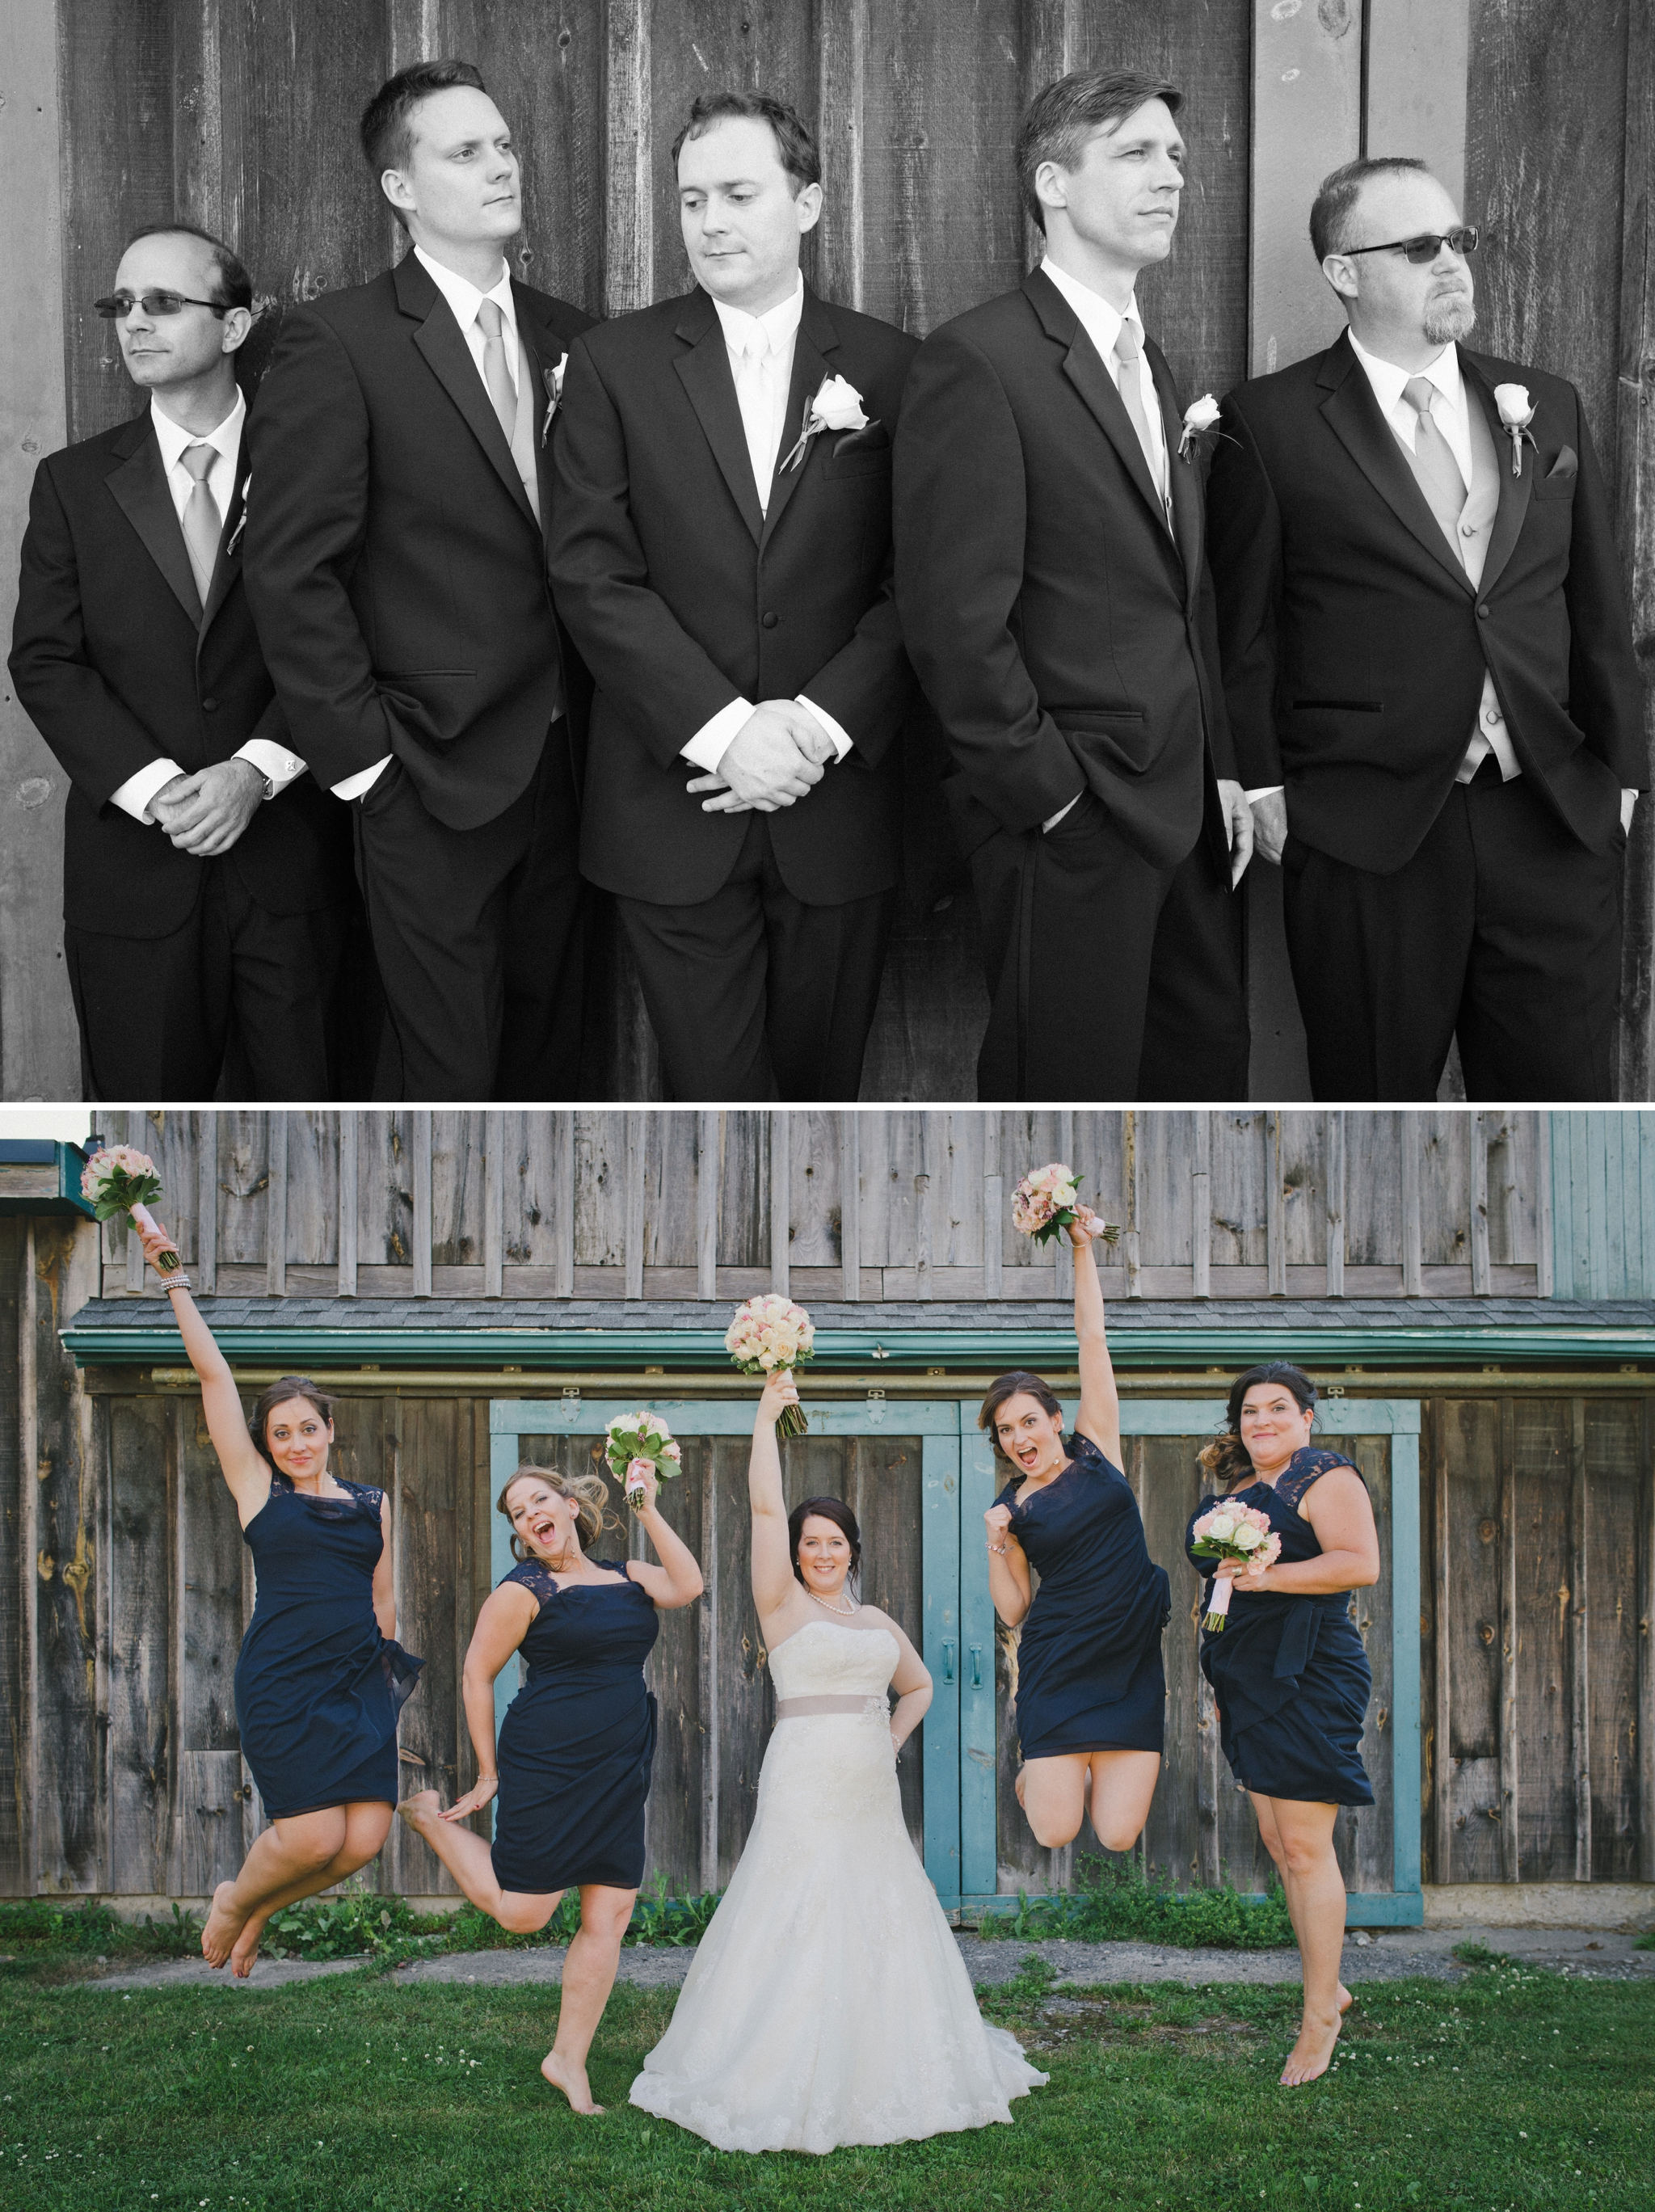 28-bride-and-groom-with-bridal-party.jpg